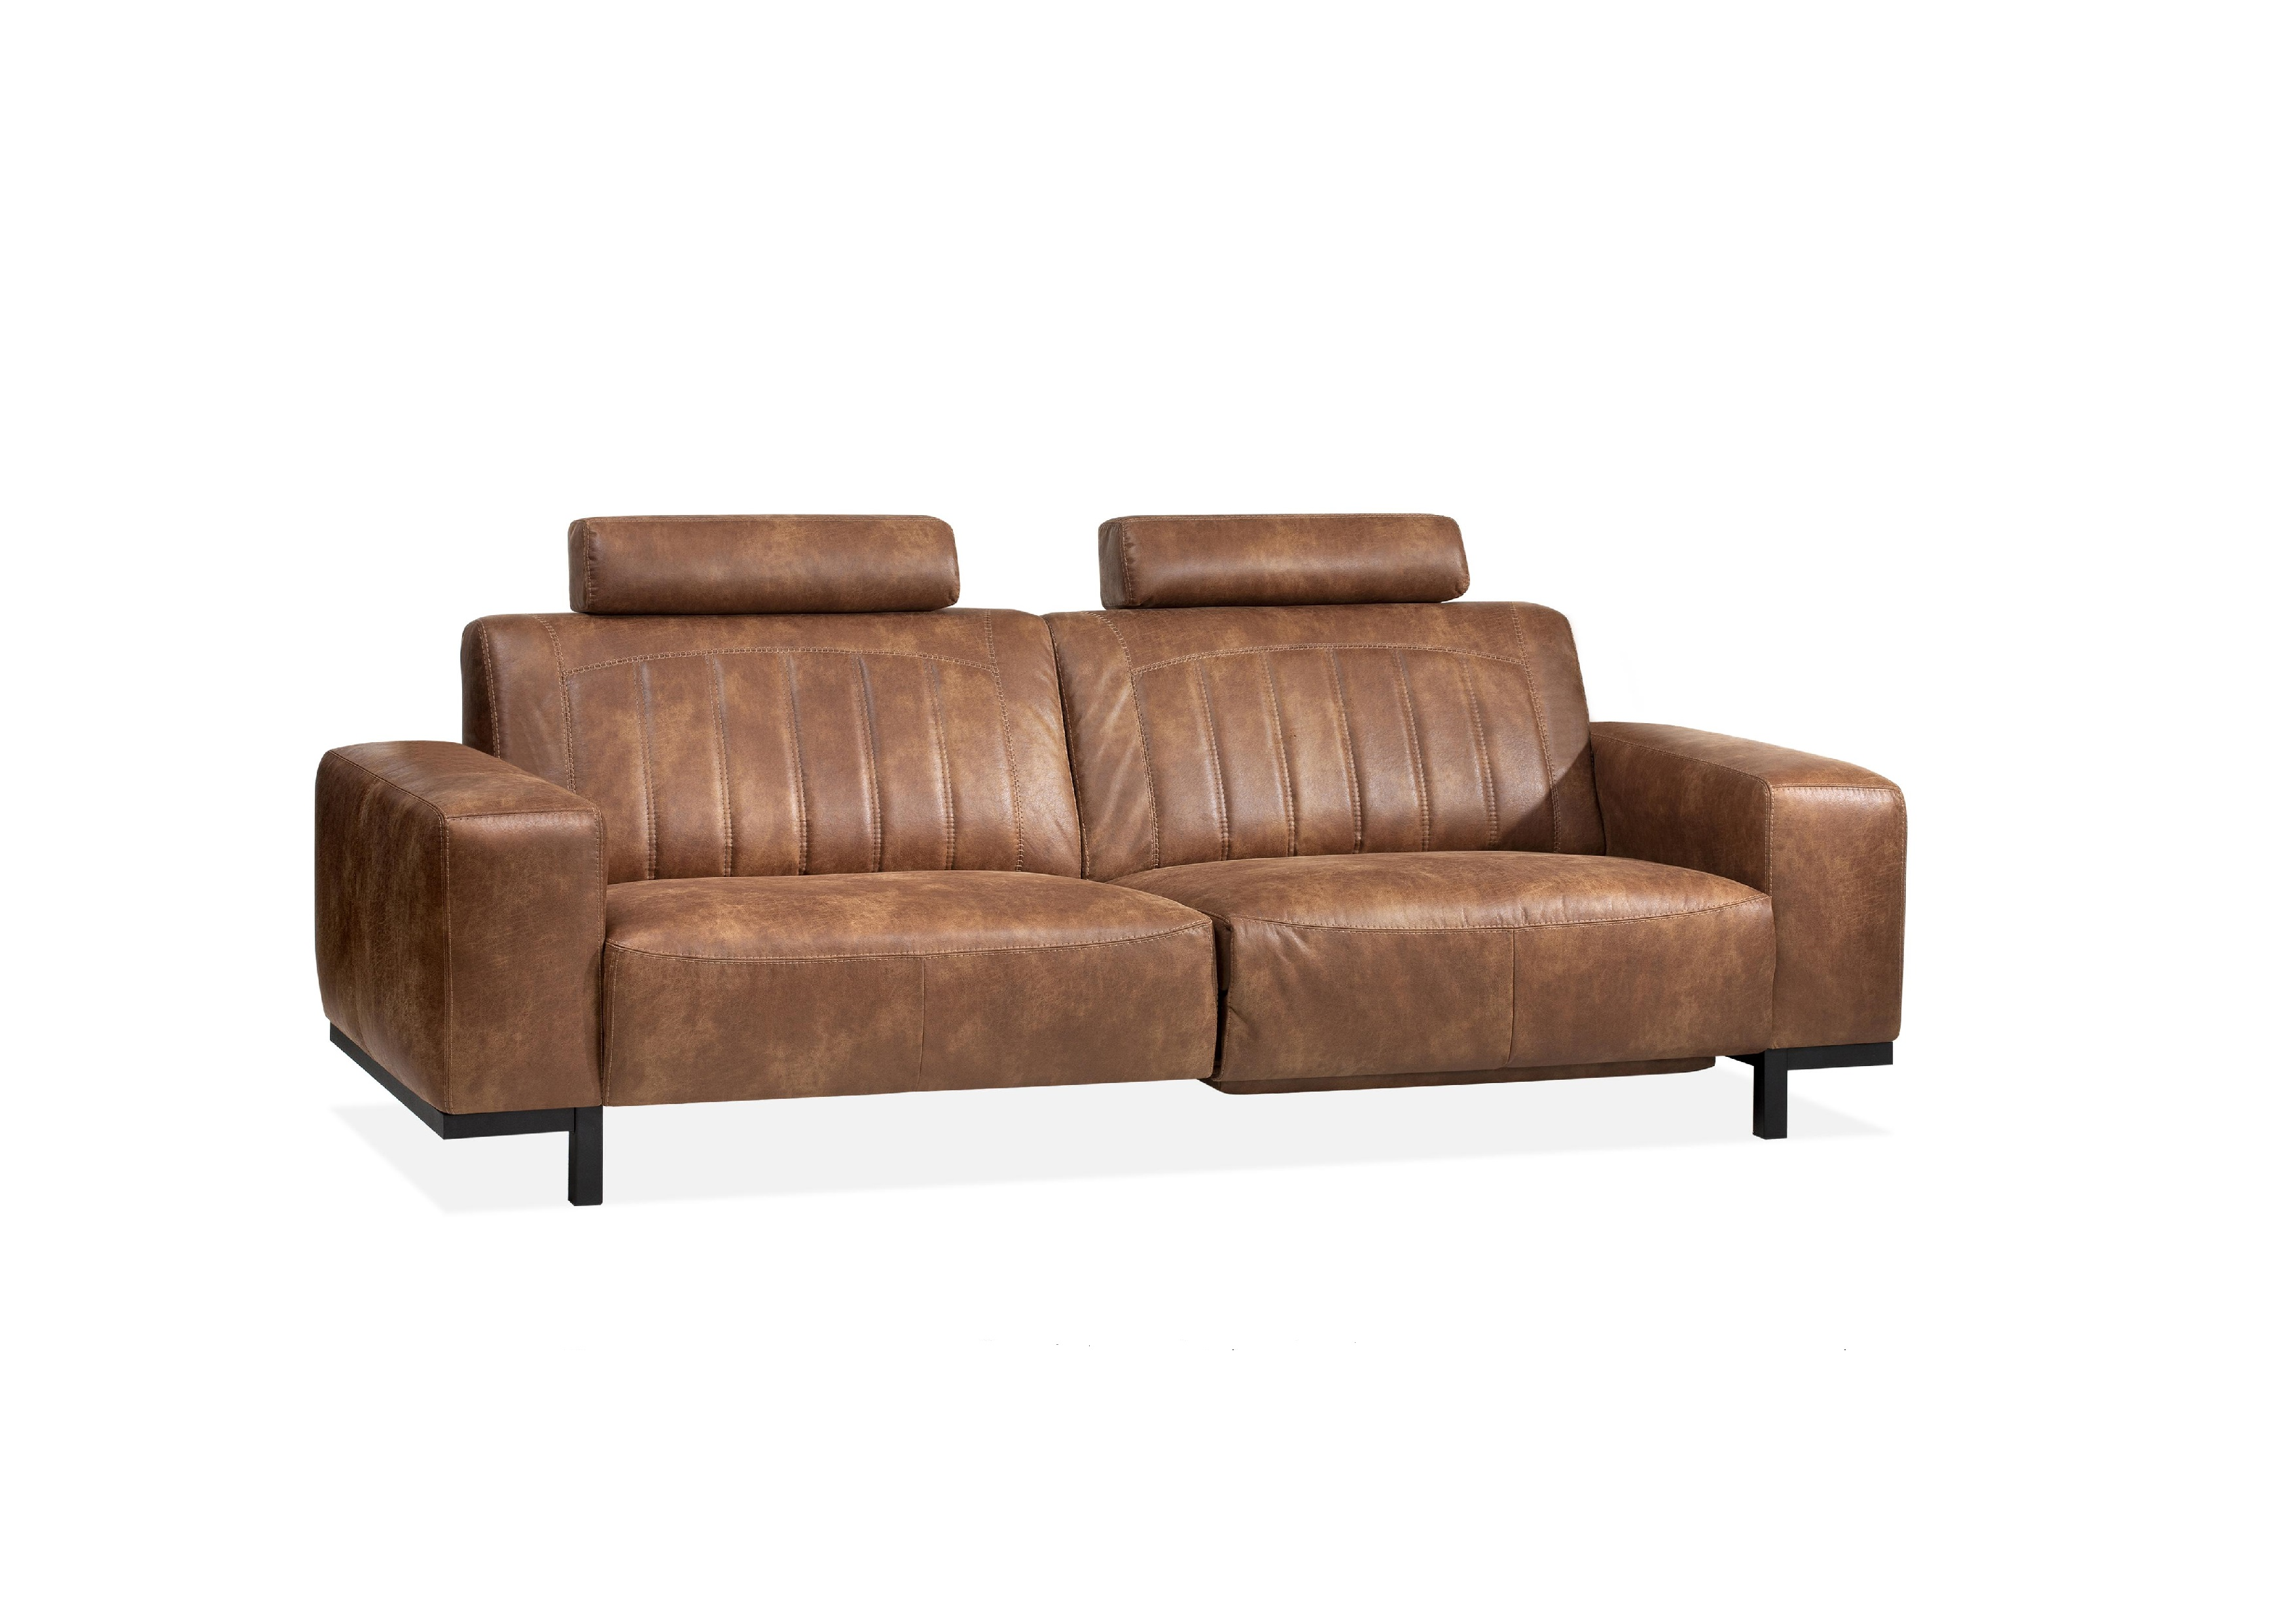 Urban Sofa Banken Bank Solution In Several Models Possible Wiegers Xl